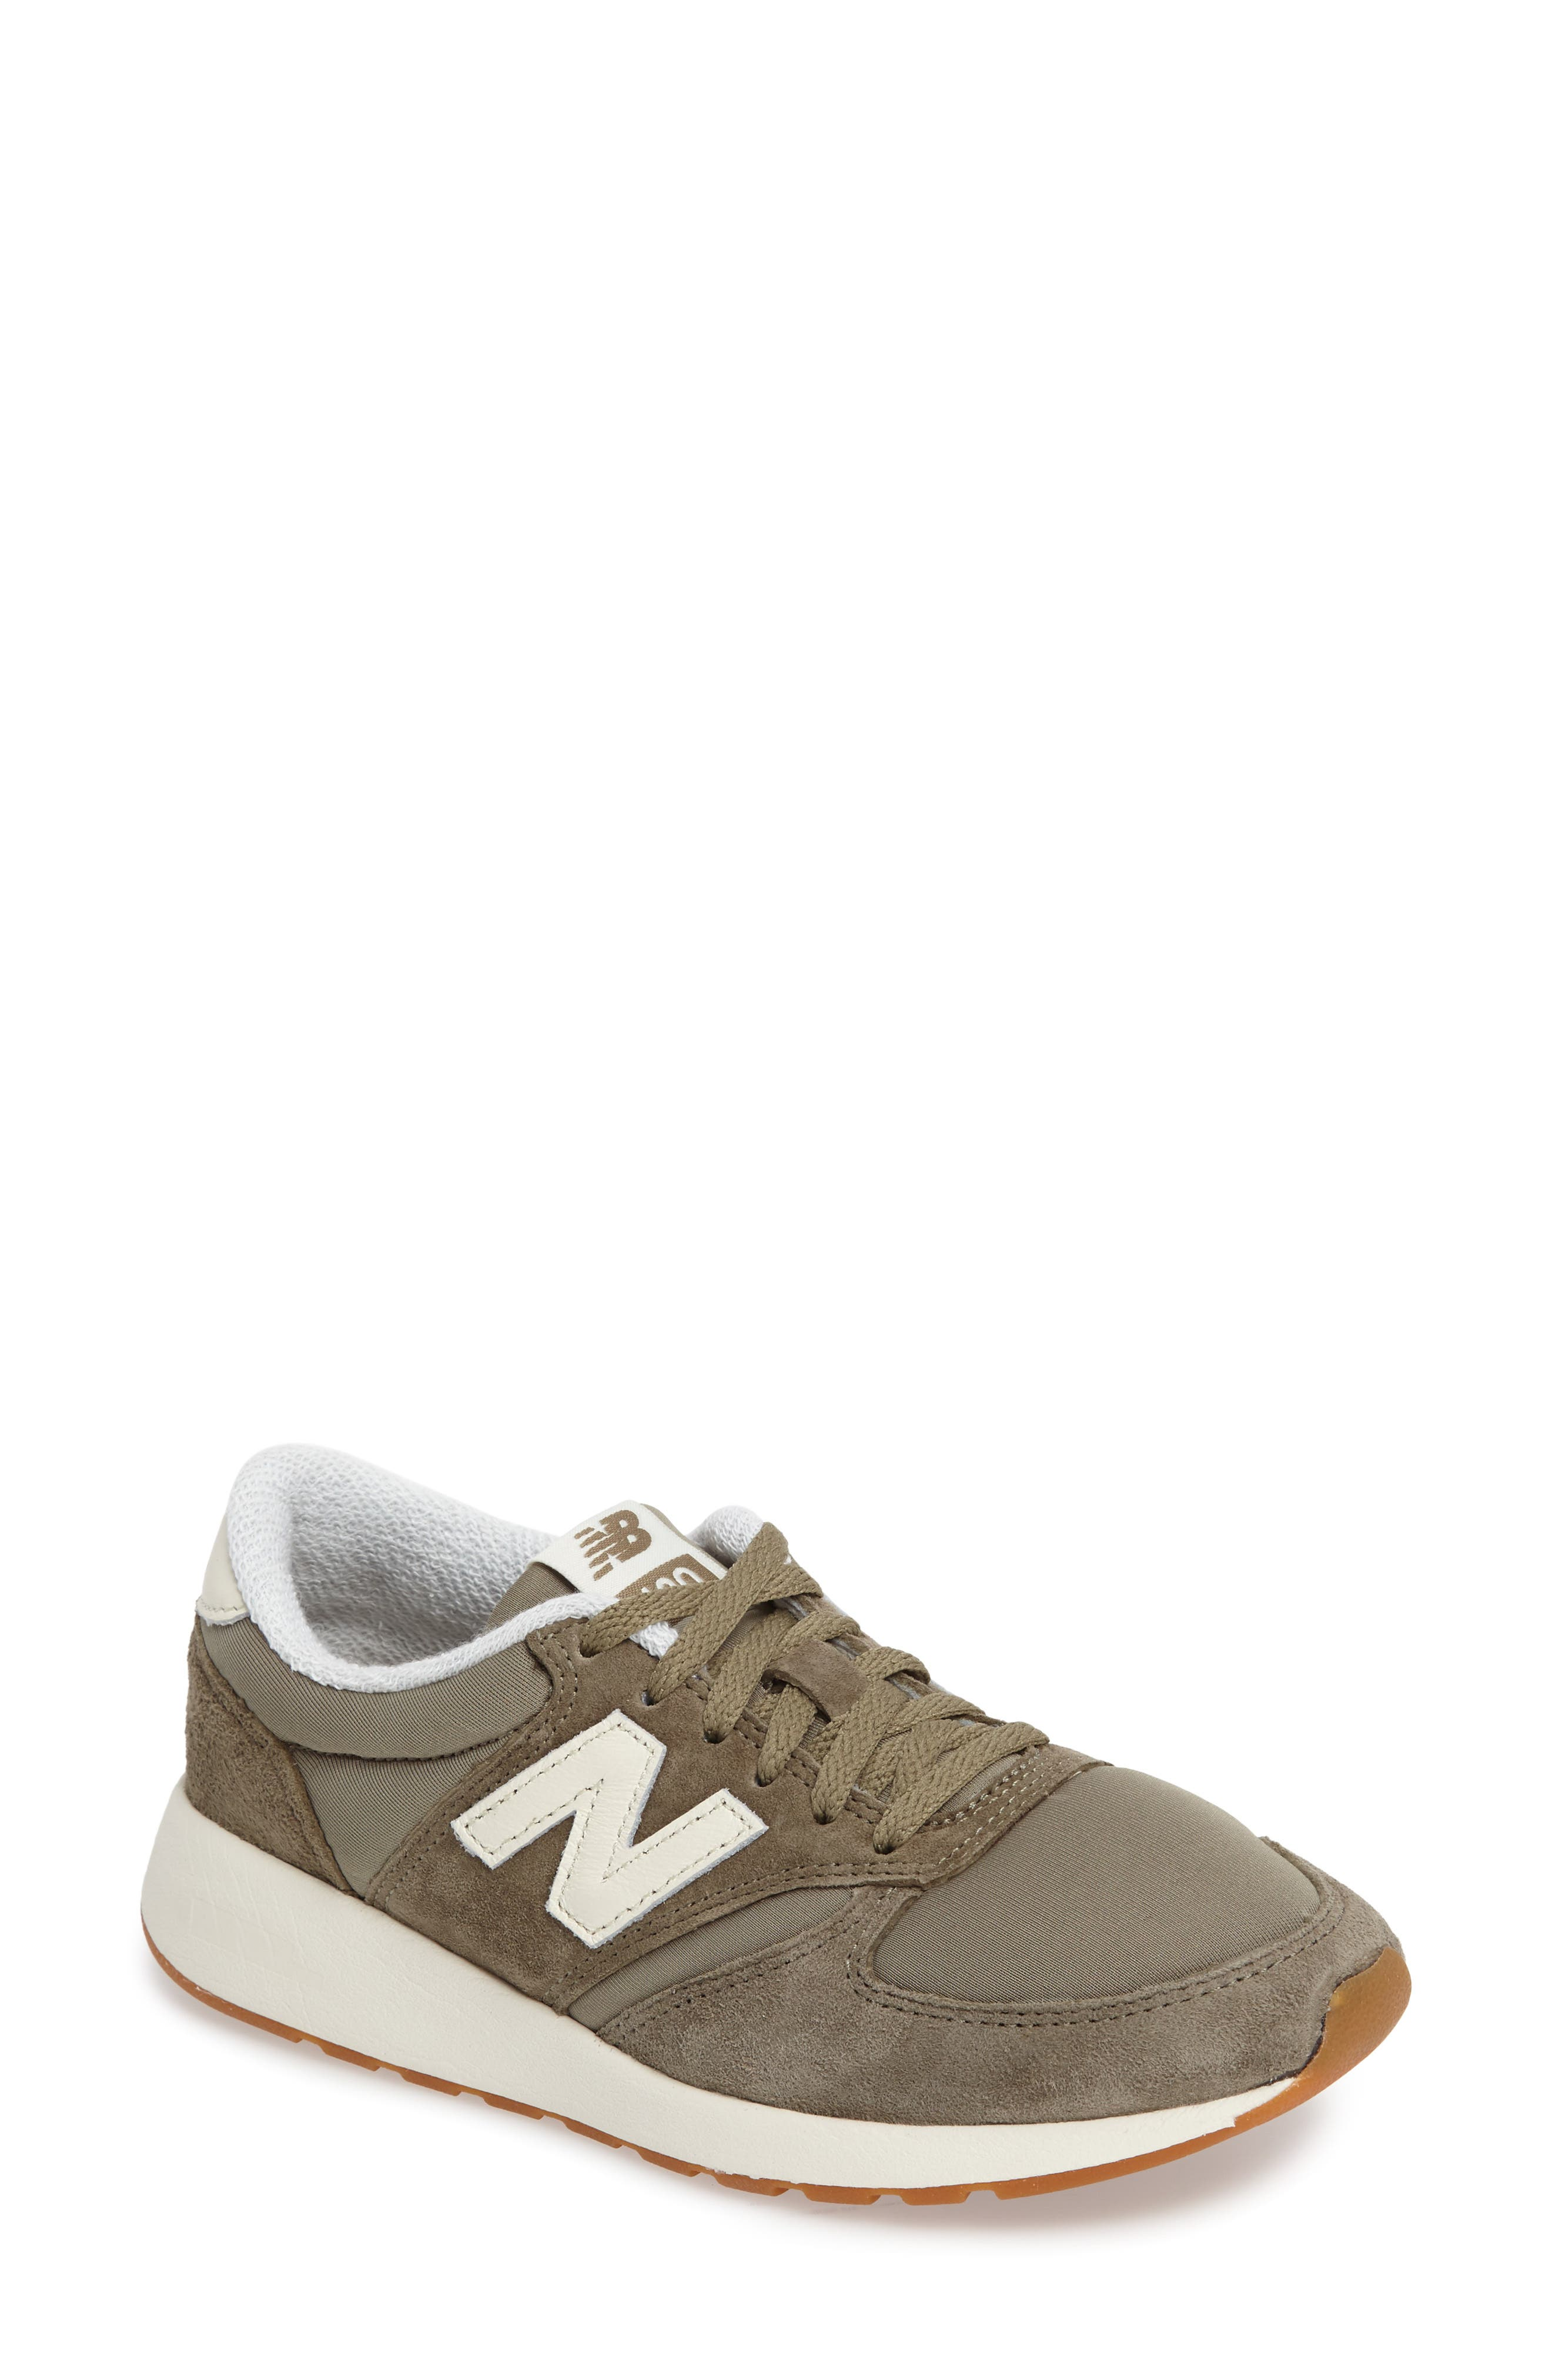 New Balance 420 Sneaker (Women)